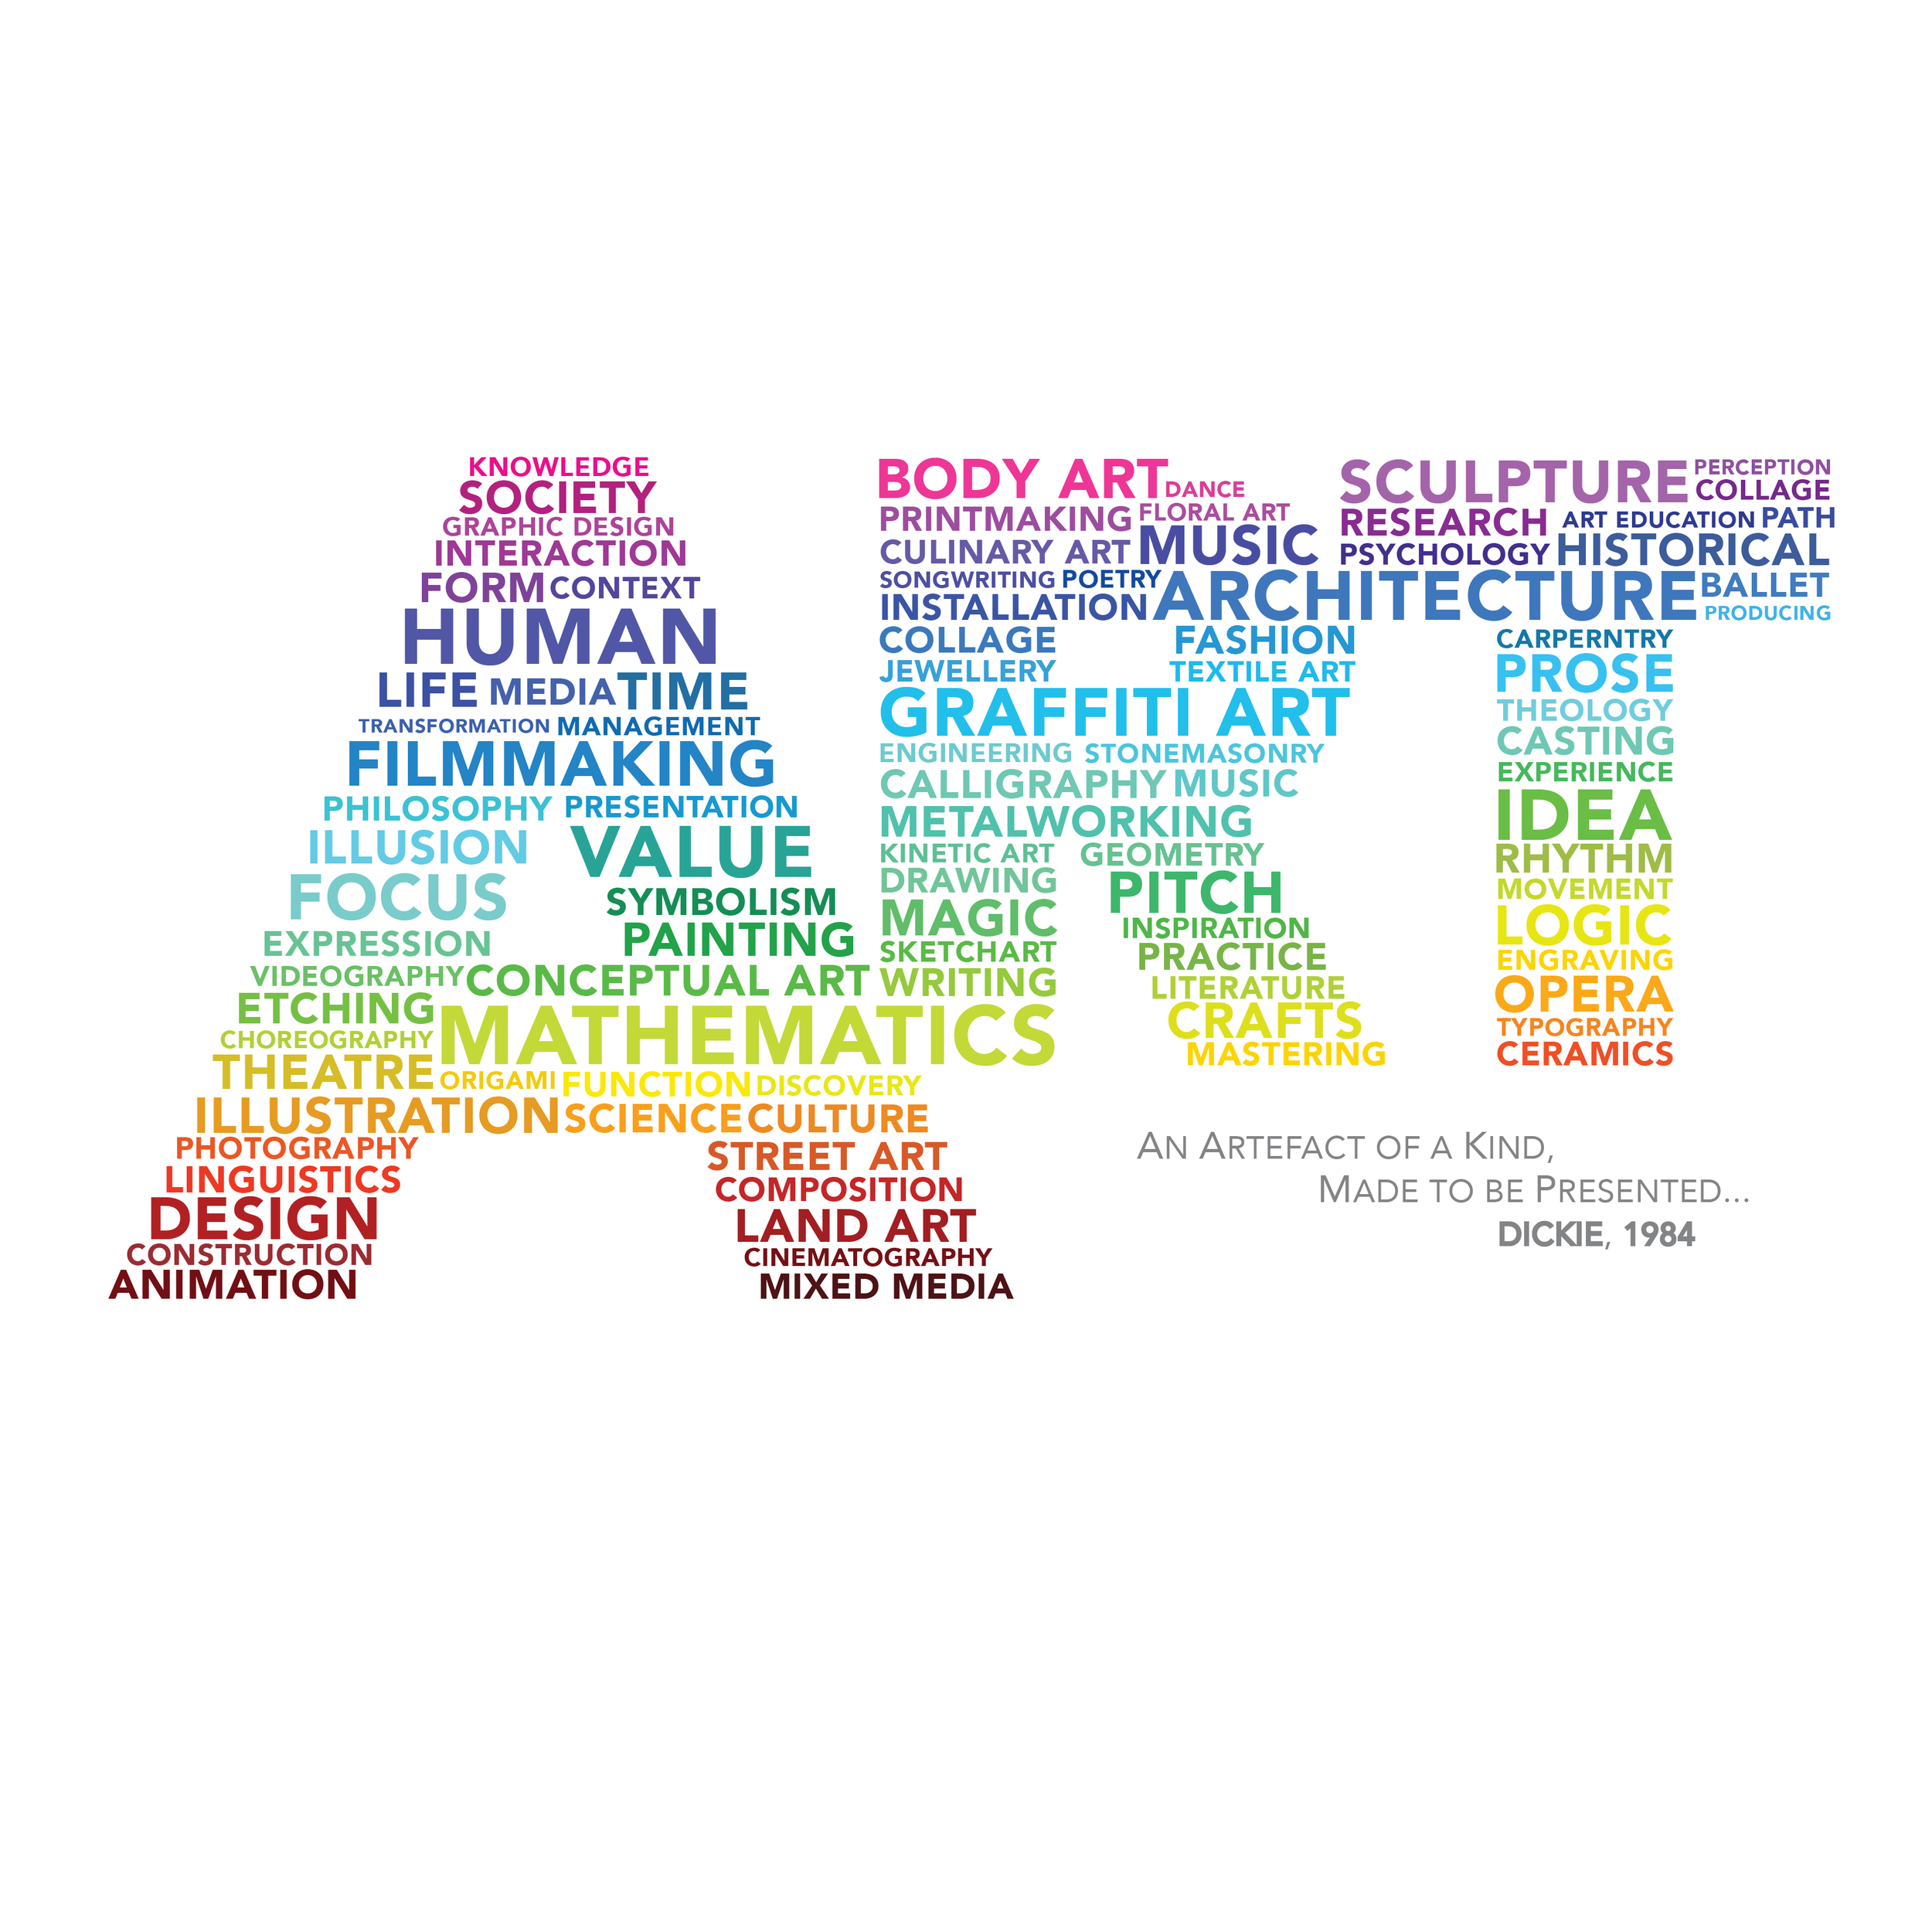 ART, an Artefact of a Kind (Colourful)(POSTER).png